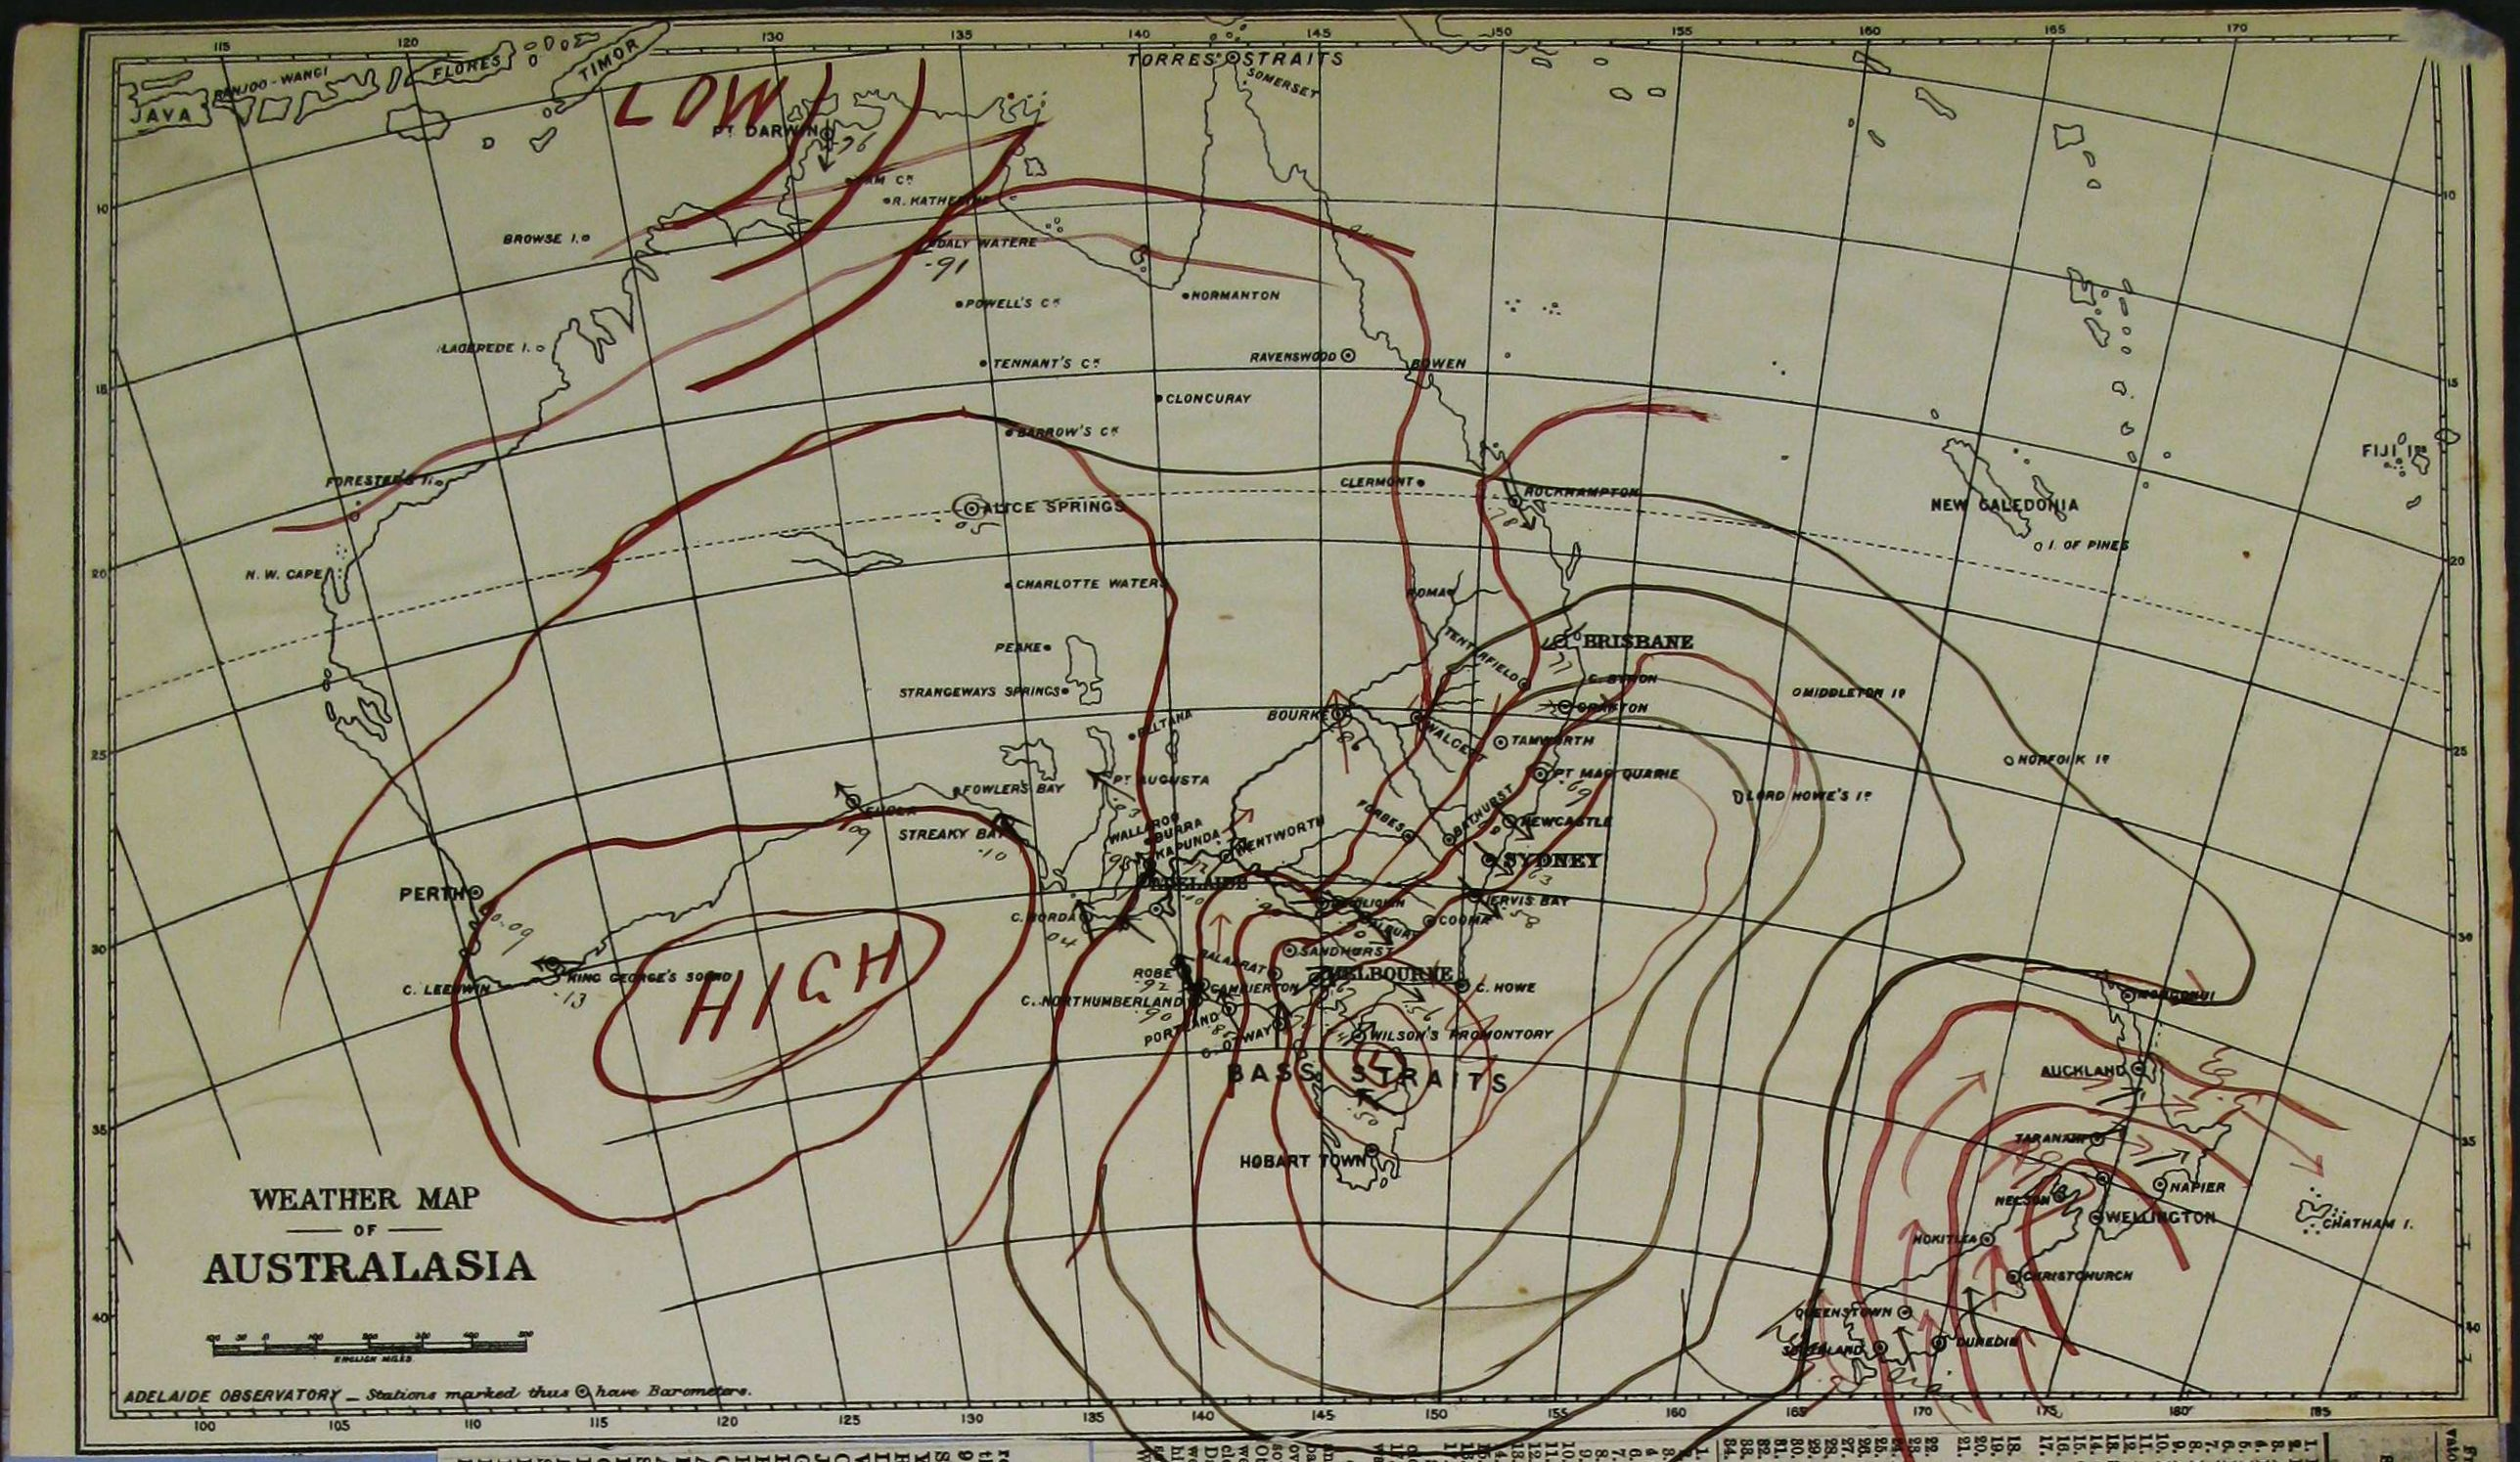 18811117c0900 Weather map